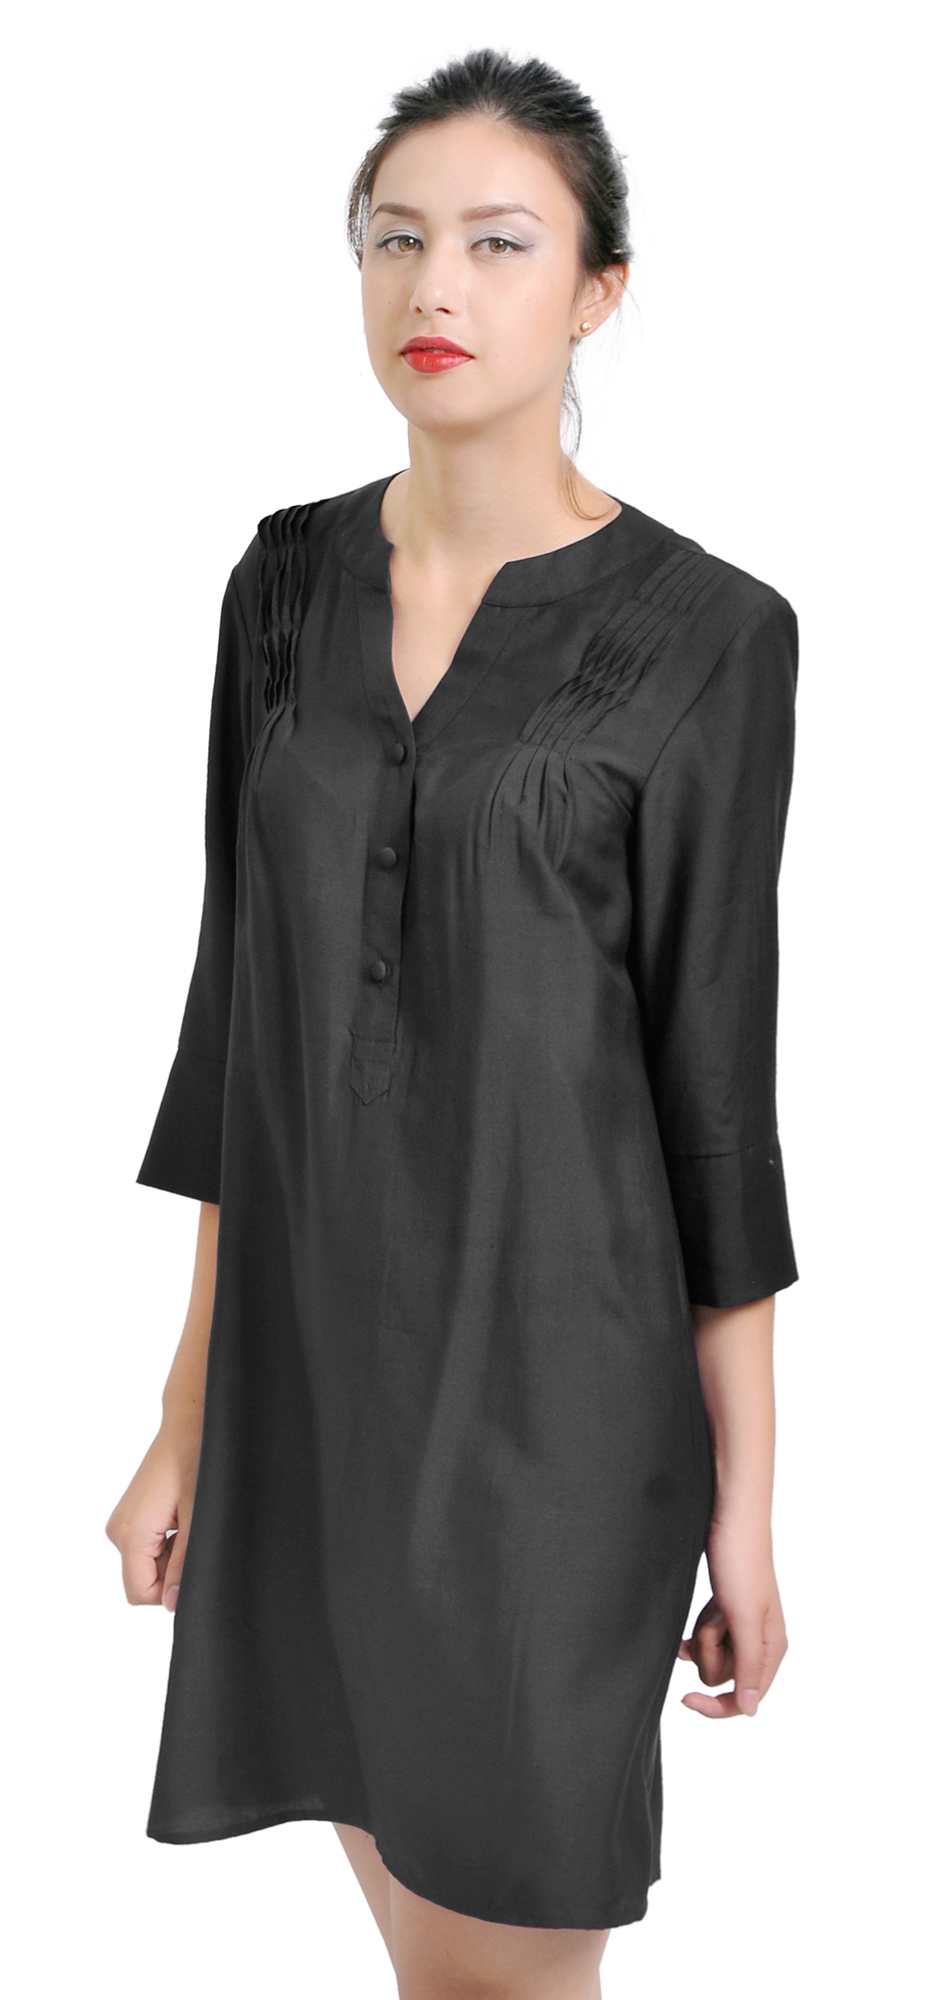 Mary crafts womens casual silk cotton tunic dress blouse for Is a tunic a dress or a shirt